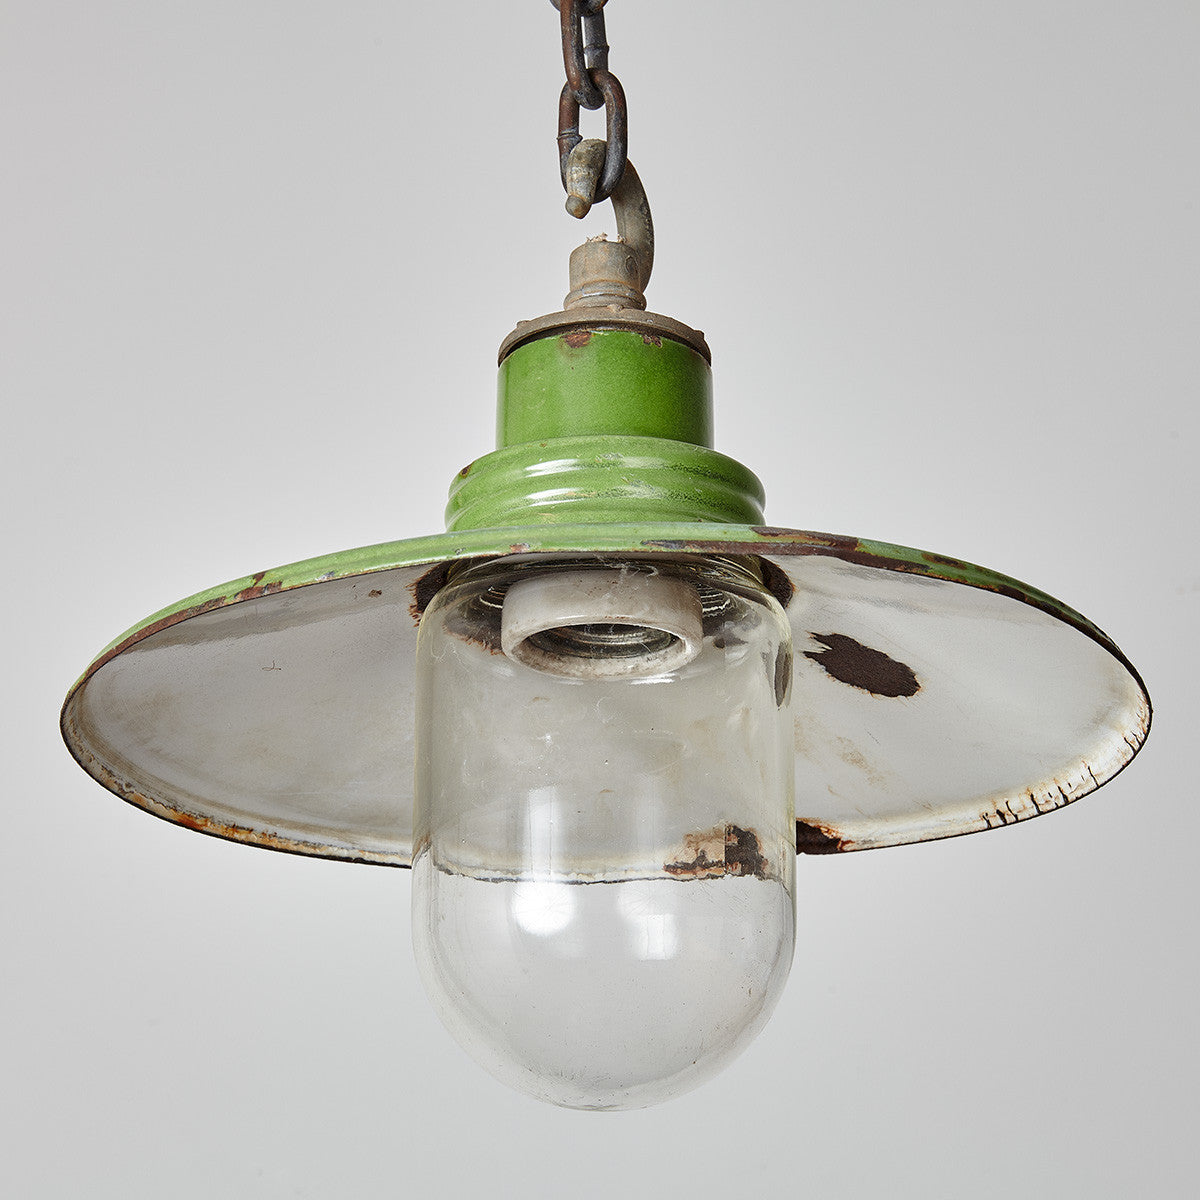 Vintage Enamel Steel Pendant Light